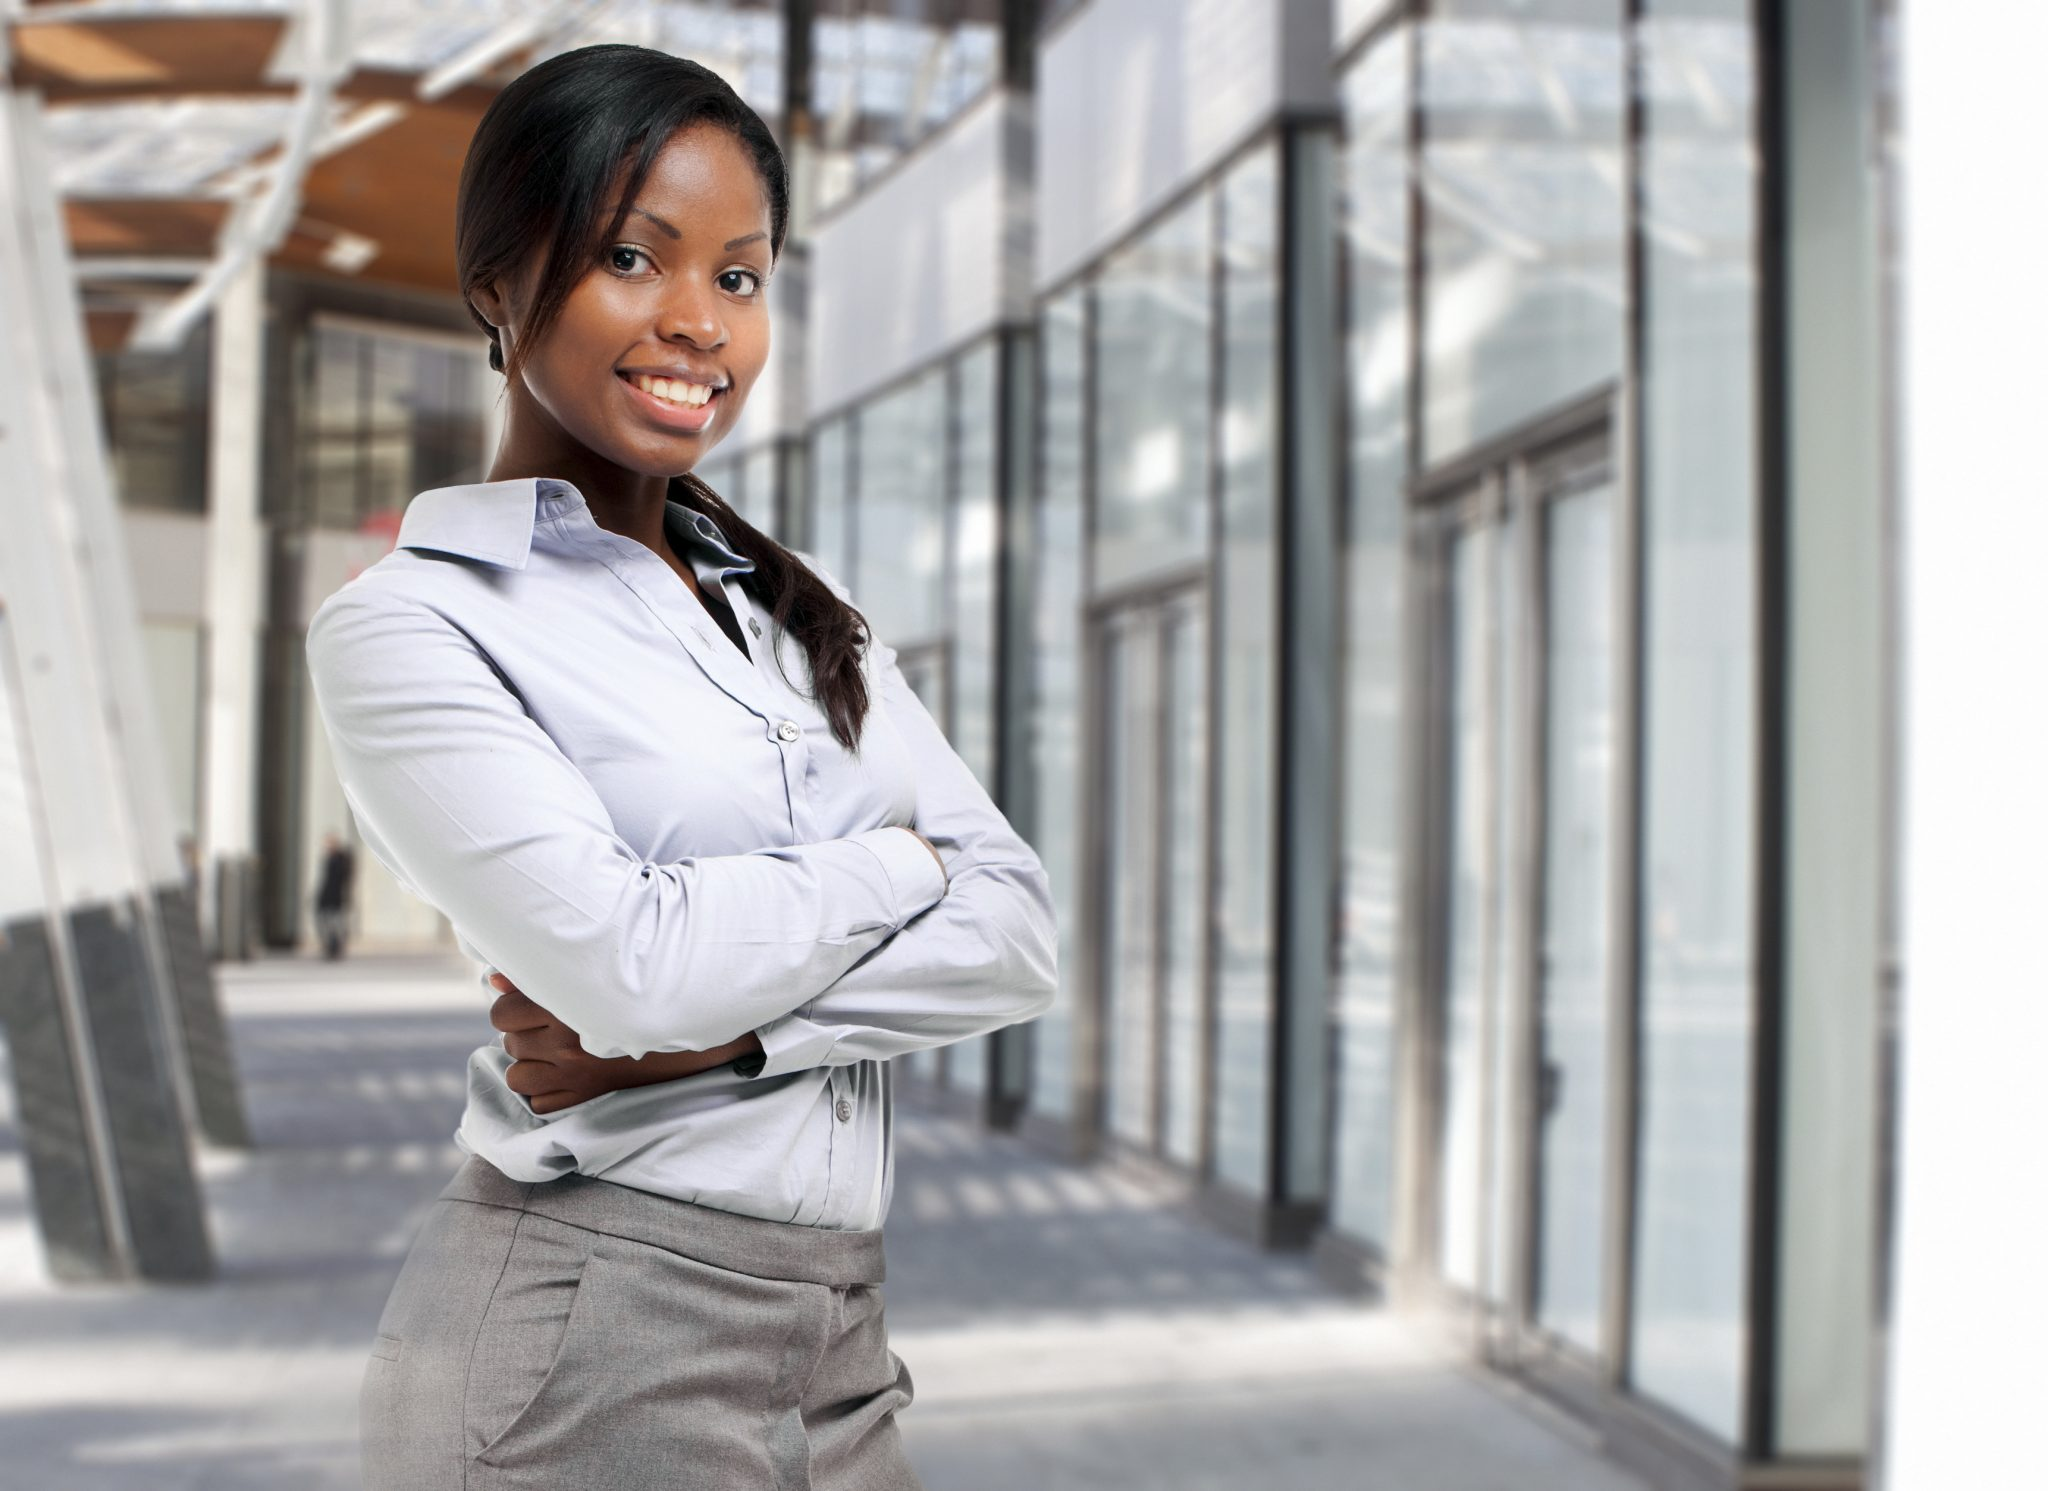 Dress to impress: What to wear to an interview in Zambia